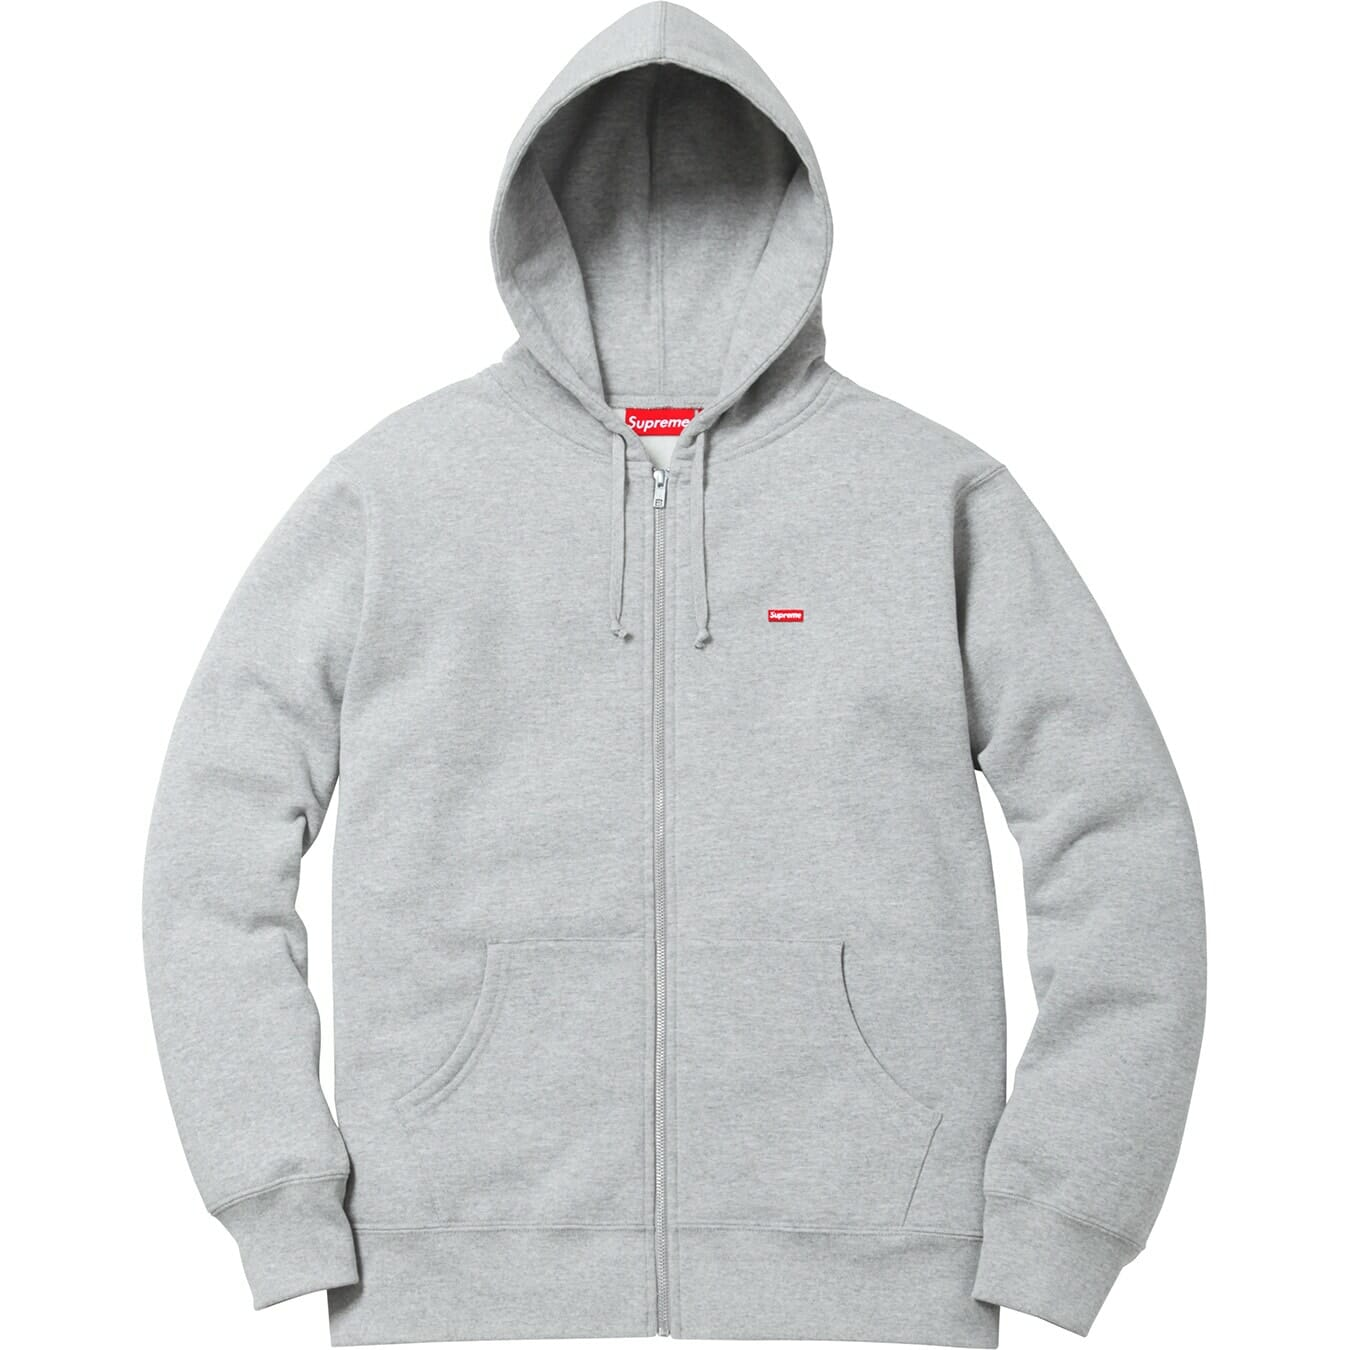 supreme-2017aw-fall-winter-small-box-zip-up-sweatshirt